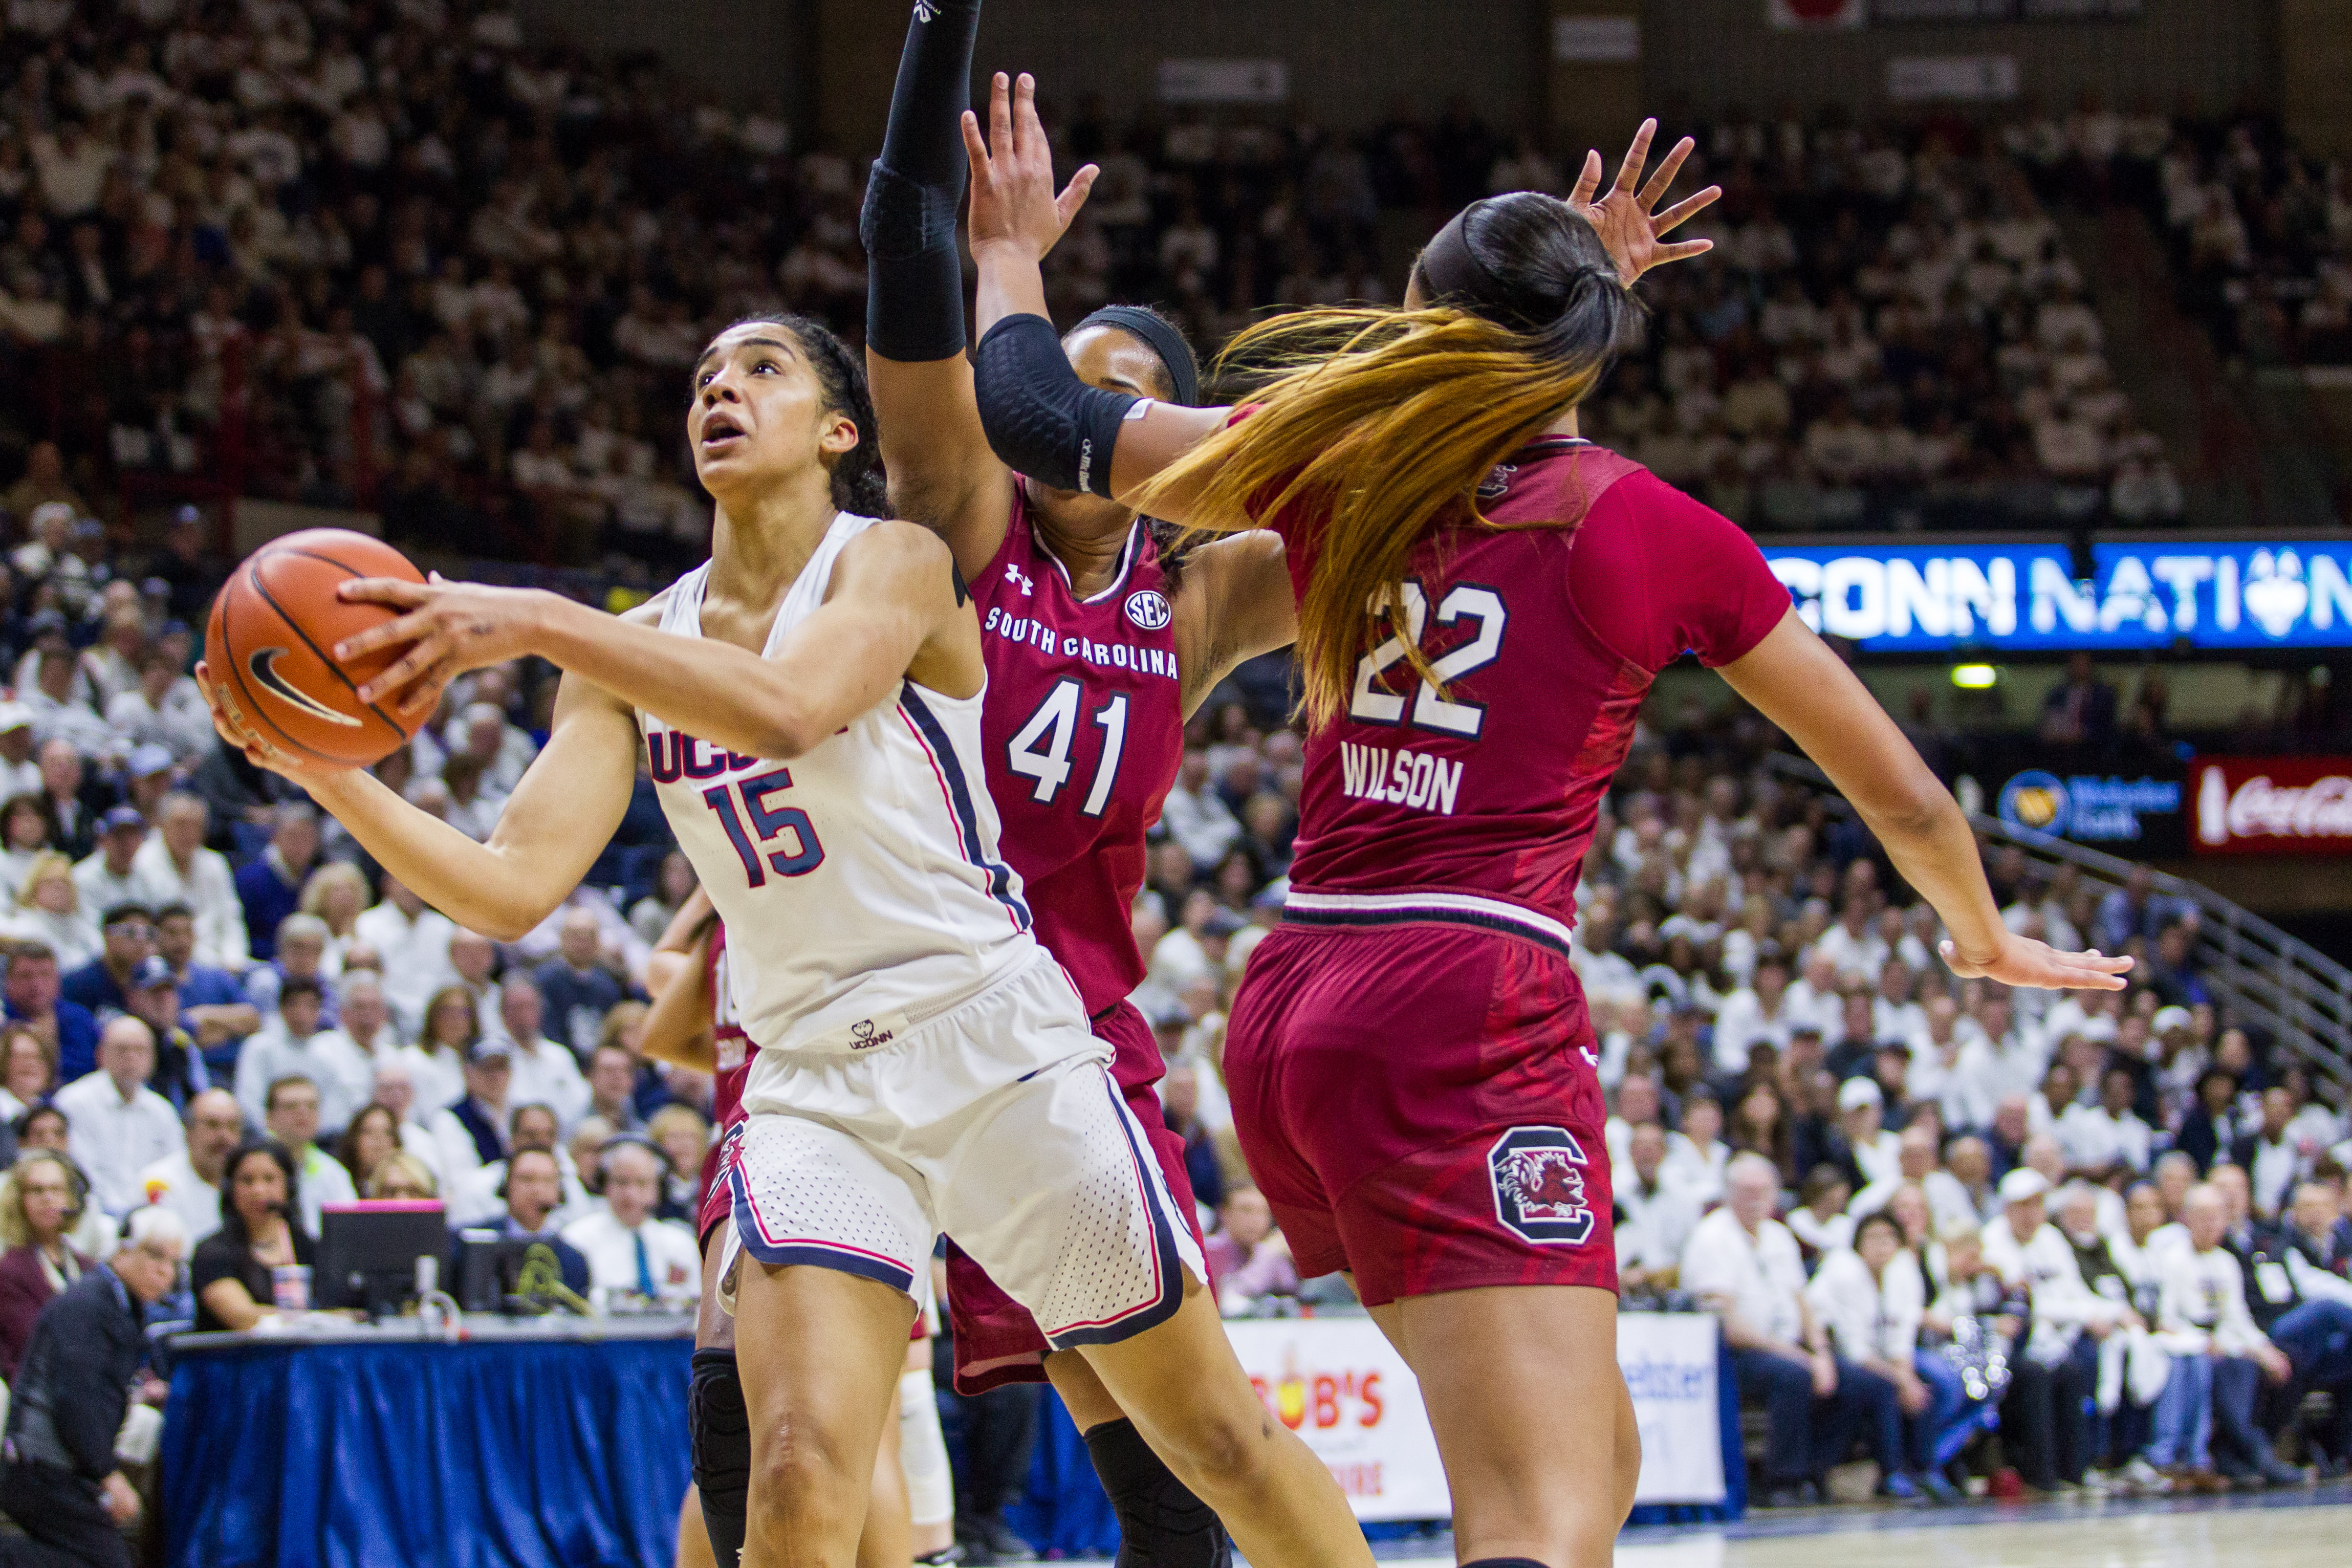 COLLEGE BASKETBALL: FEB 13 Women's – South Carolina at UConn